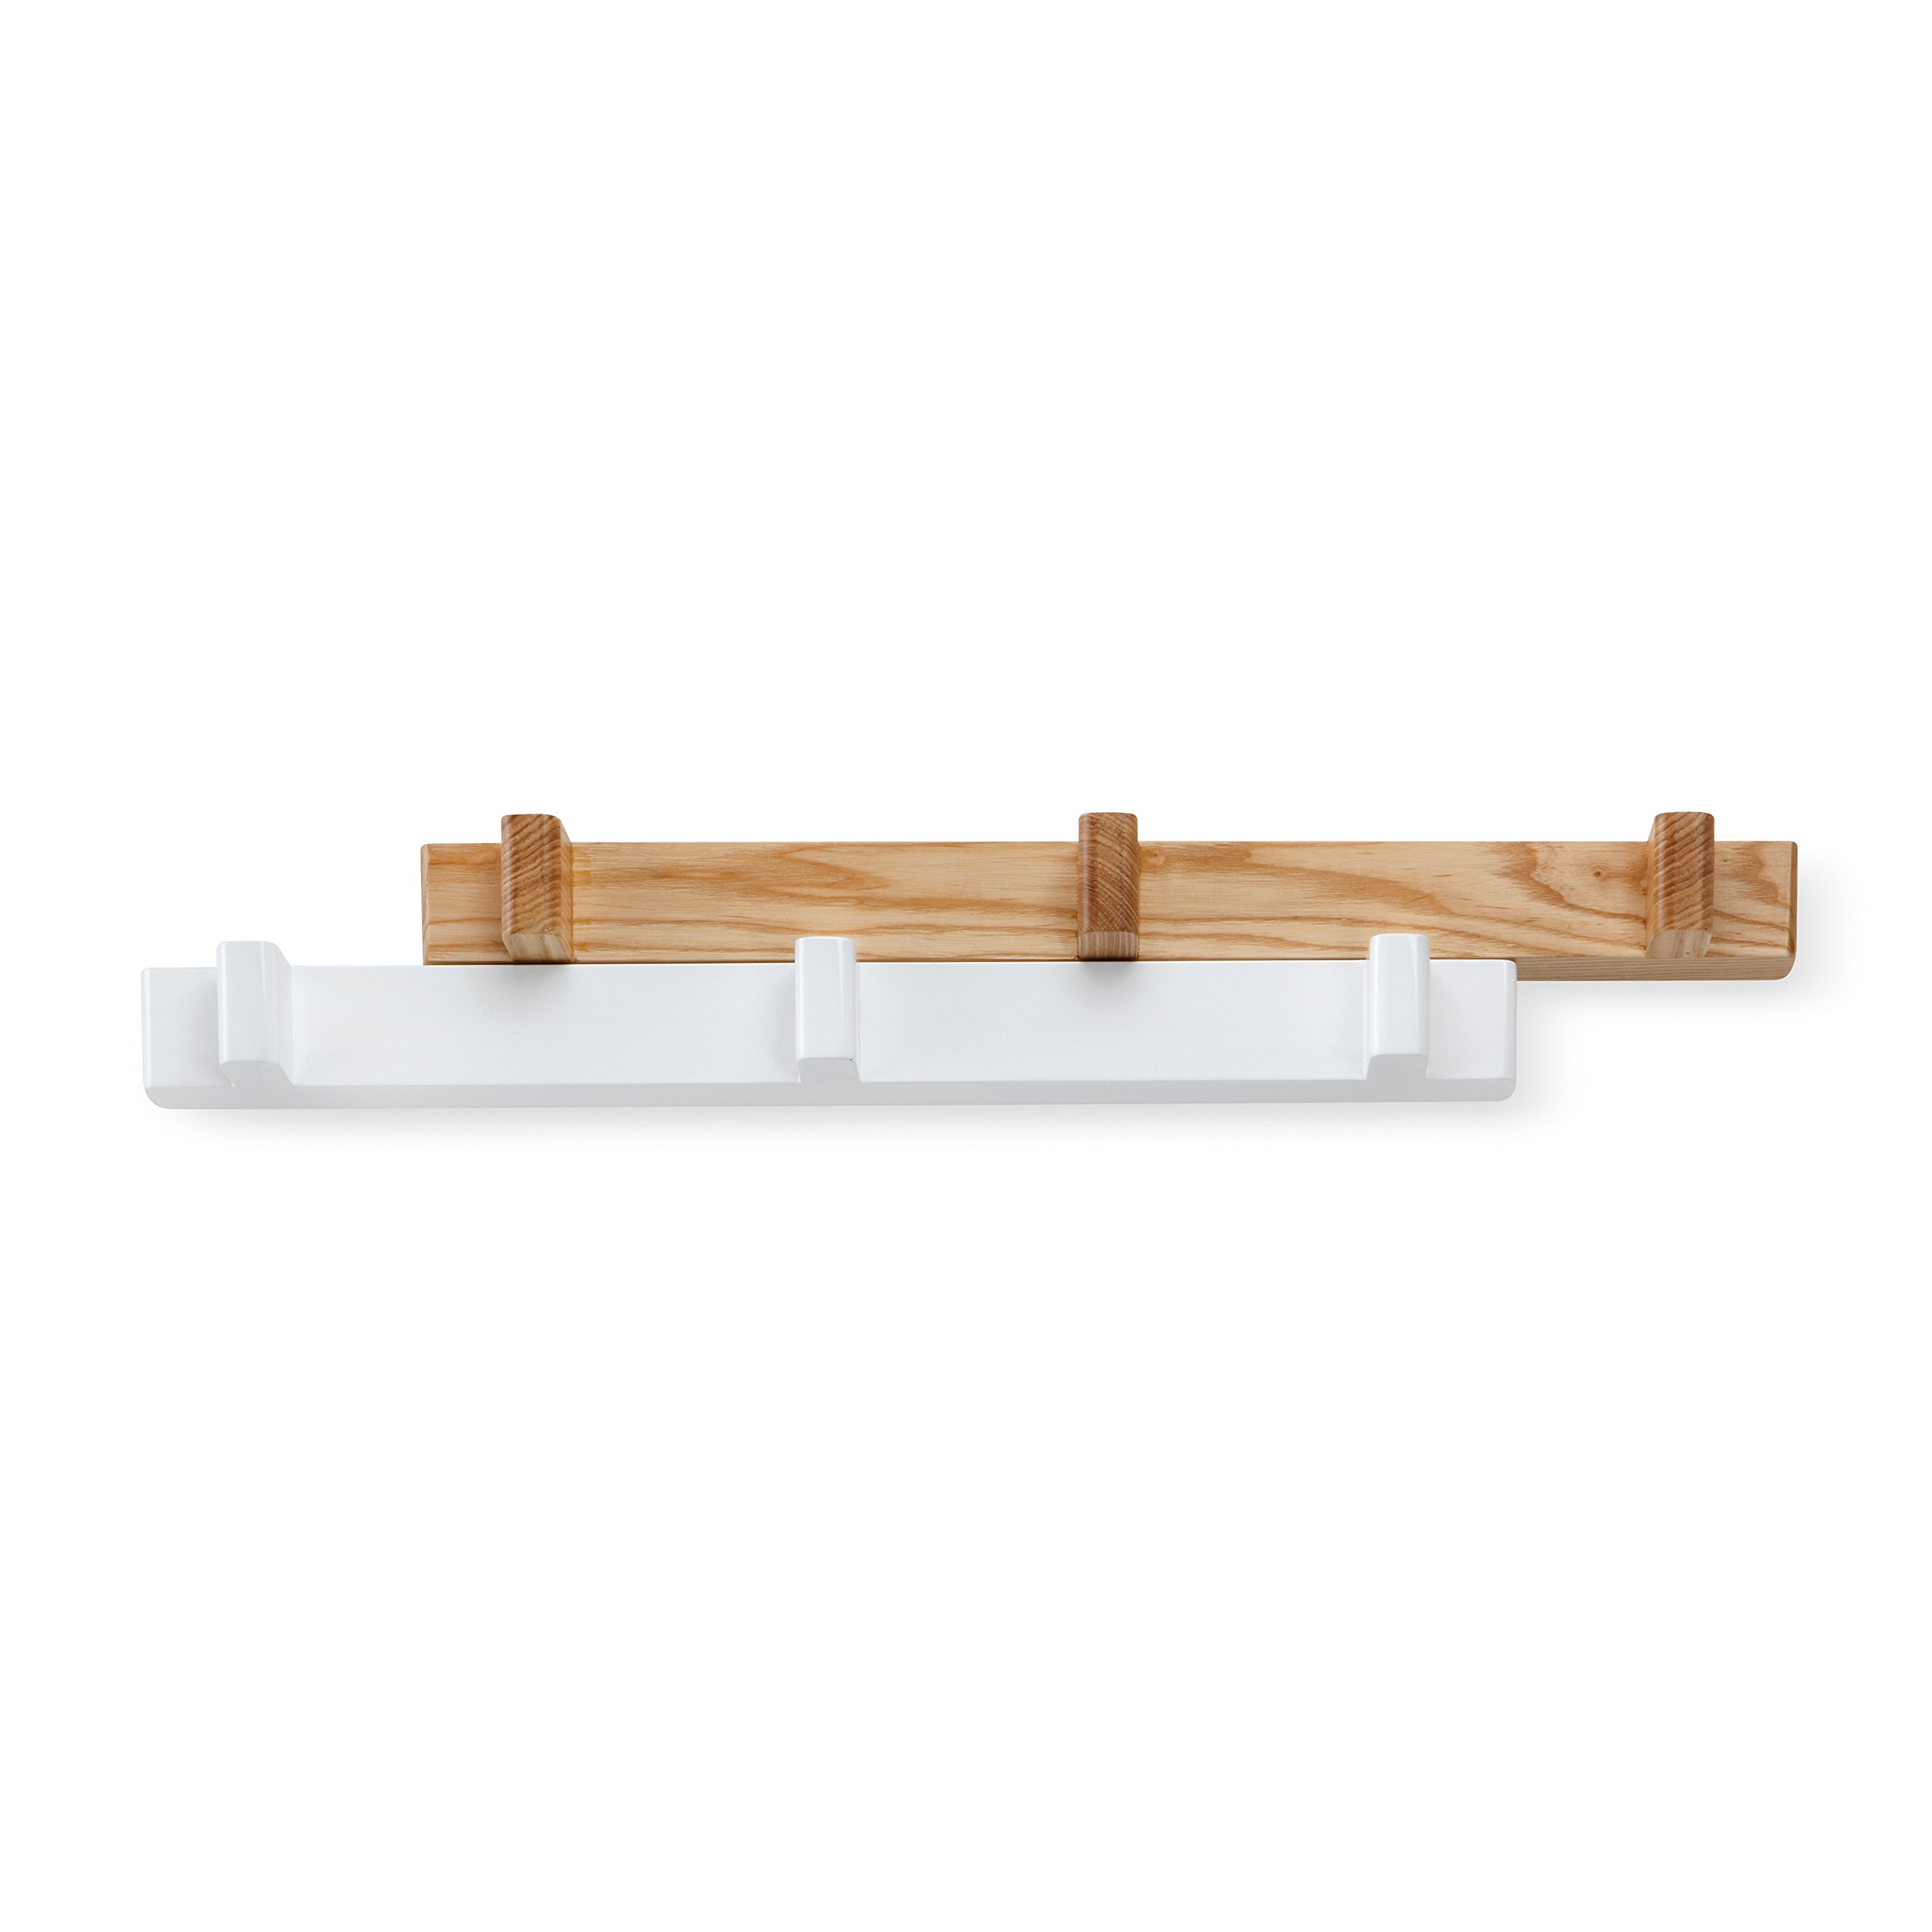 Umbra Switch Wall Hook, White/Natural